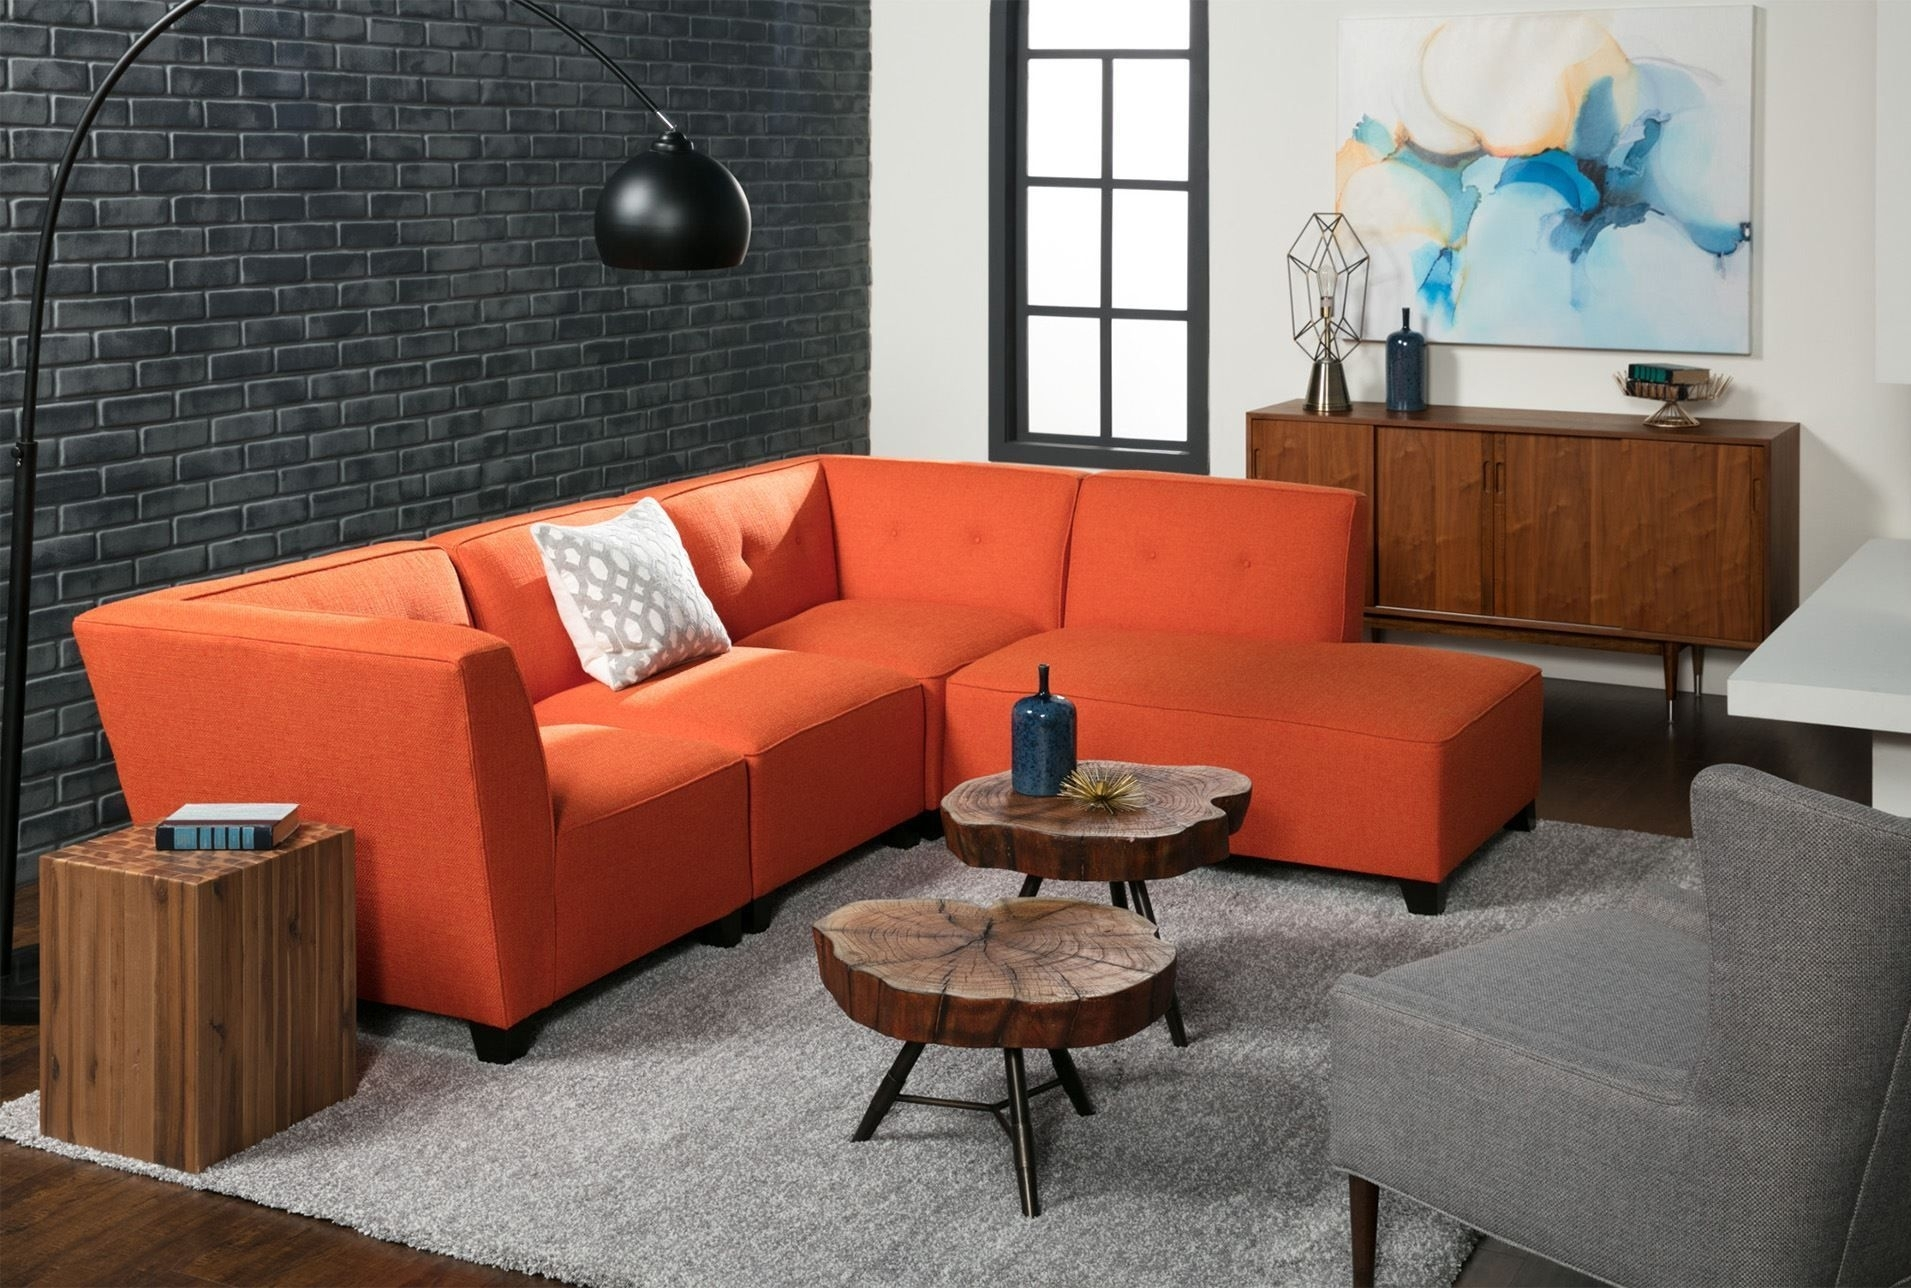 Benton 4 Piece Sectional | Remodel | Pinterest | Sweet House With Benton 4 Piece Sectionals (Image 6 of 25)